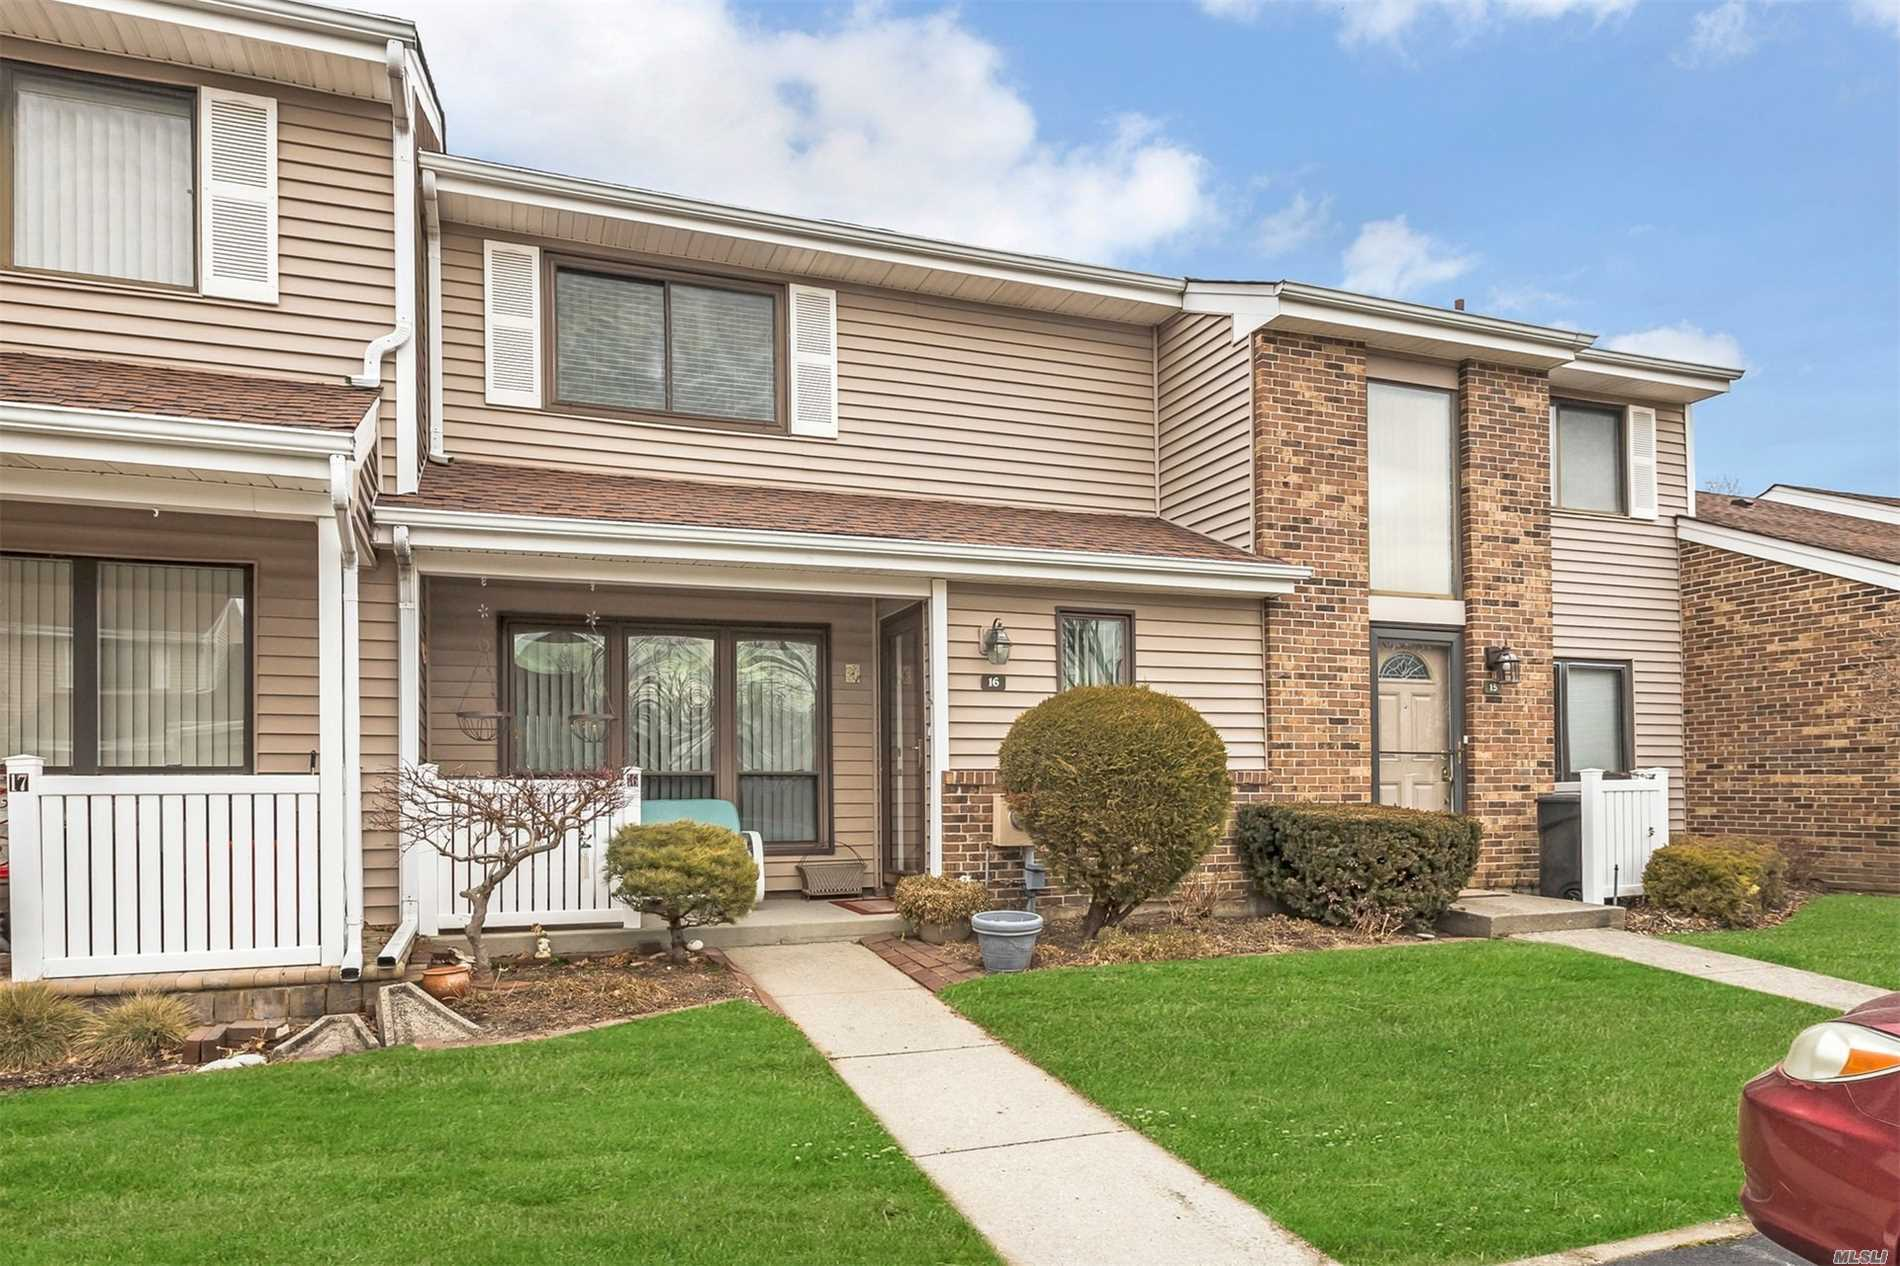 Live In A Beautiful Gated Community Of Hidden Ponds. Spacious 2 Bedroom, 1.5 Bath With Formal Dining Room, Eat In Kitchen, Large Master Bedroom And Complete Privacy Setting On Your Patio.